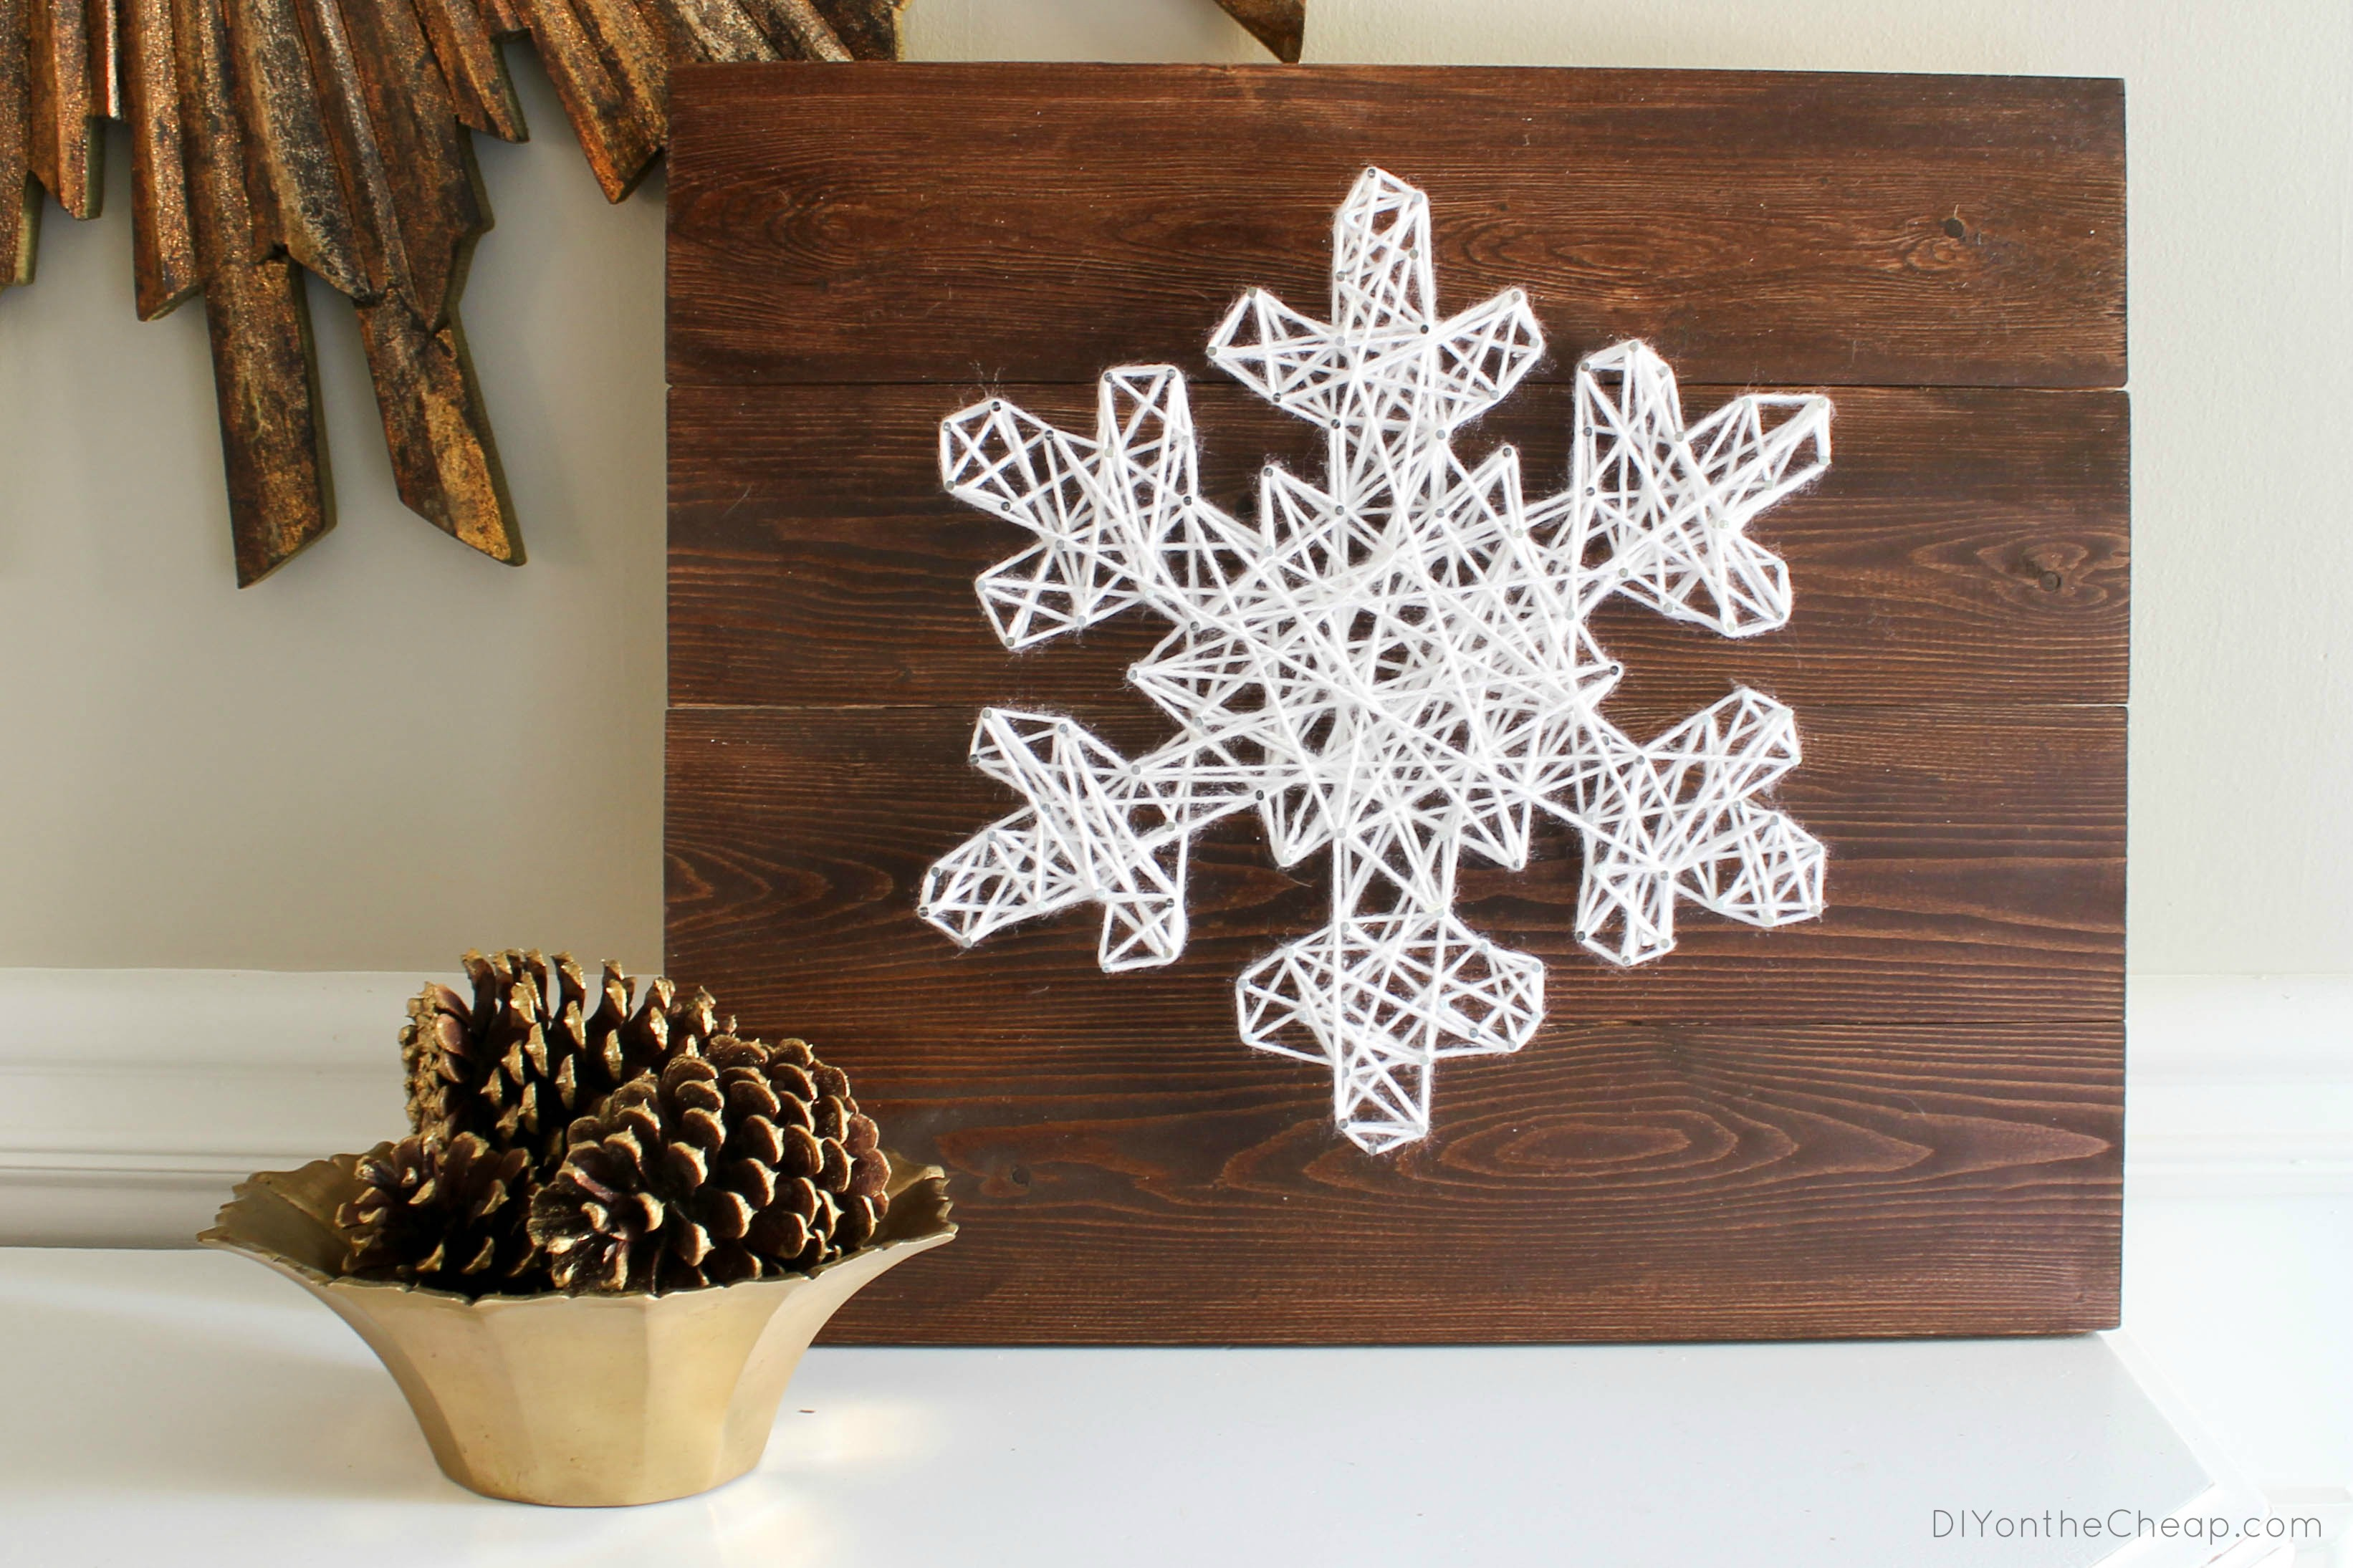 DIY Snowflake String Art + 18 Easy to Build Christmas Projects